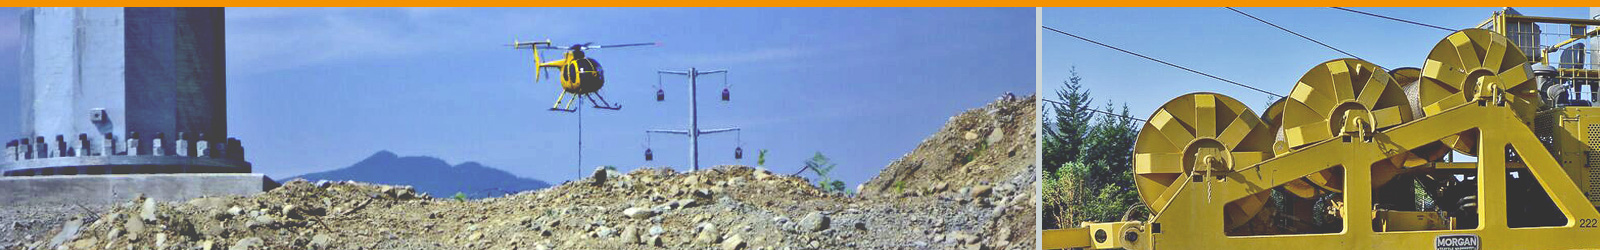 Pacific_powerlines_banner5_